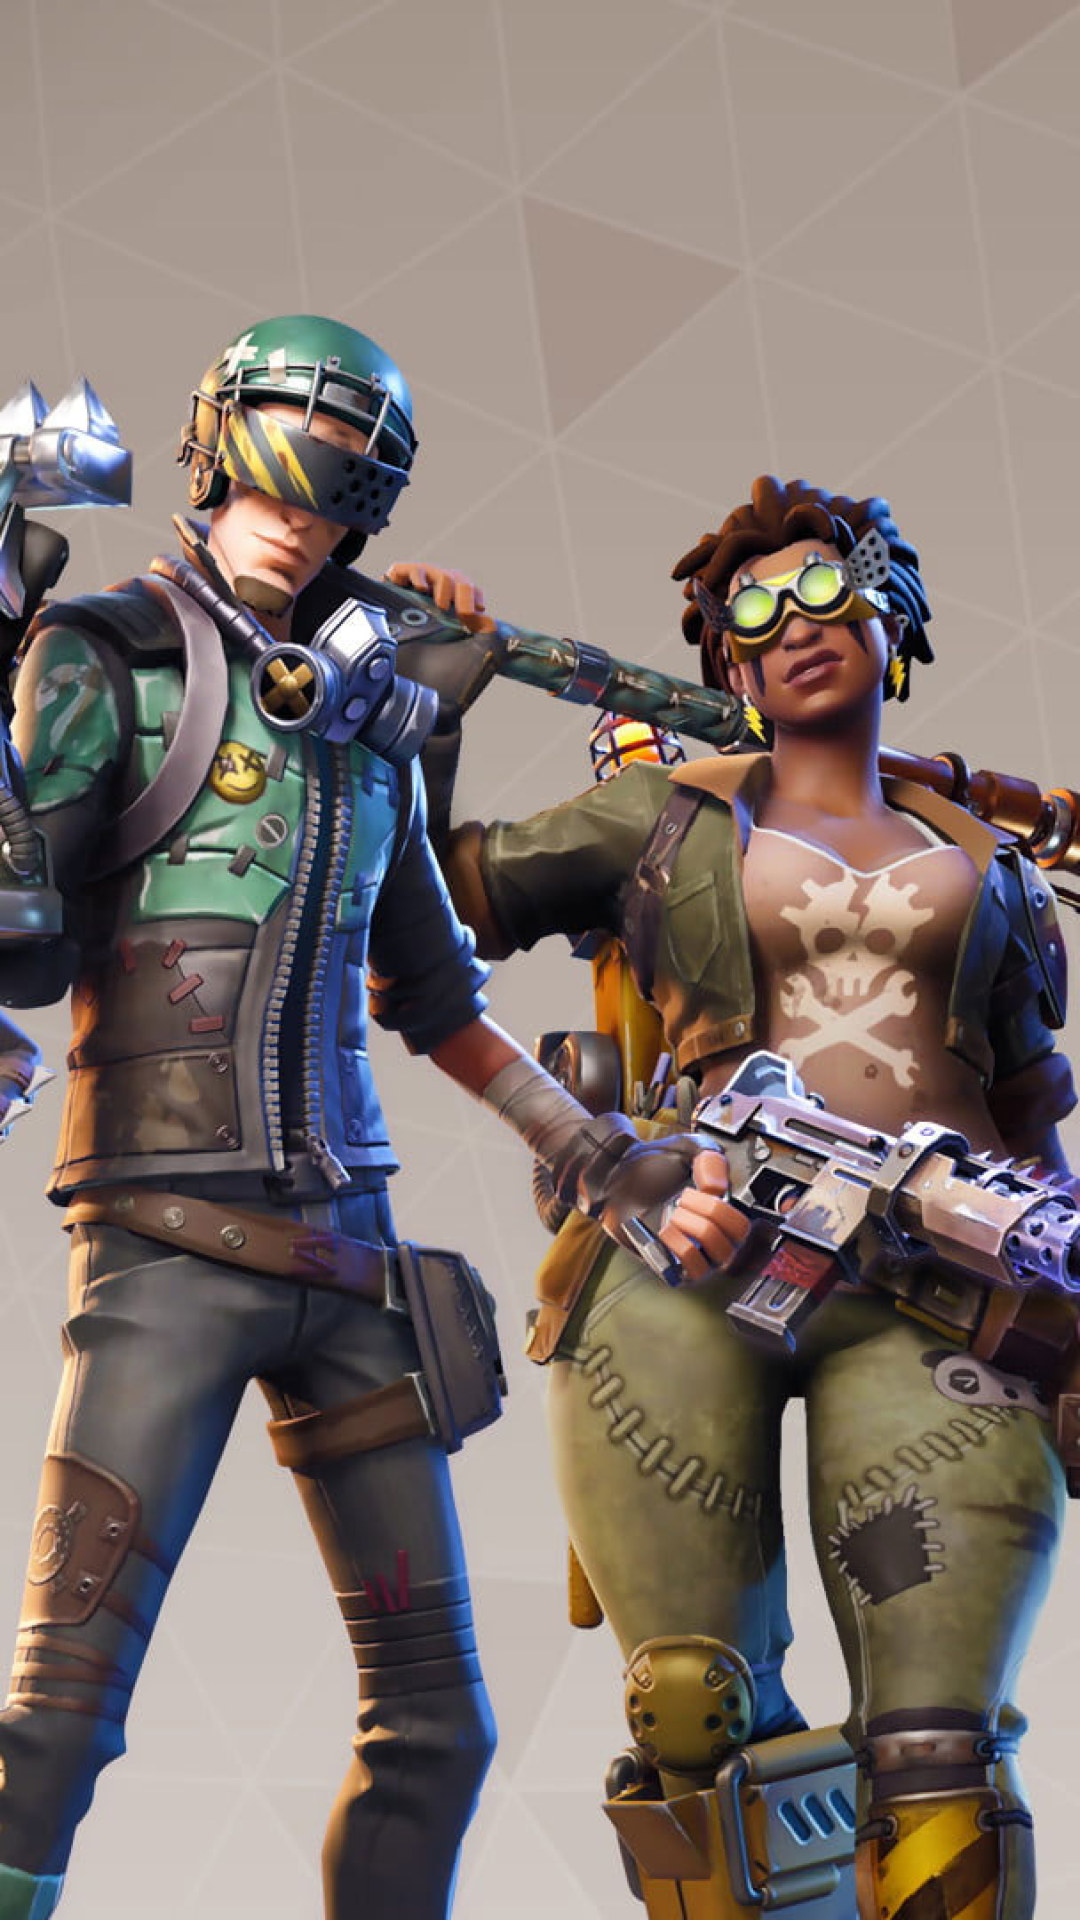 fortnite wallpapers cool iphone heroes artwork background gamer gamers android games desktop epic pc representation human mobile fornite 4k wall